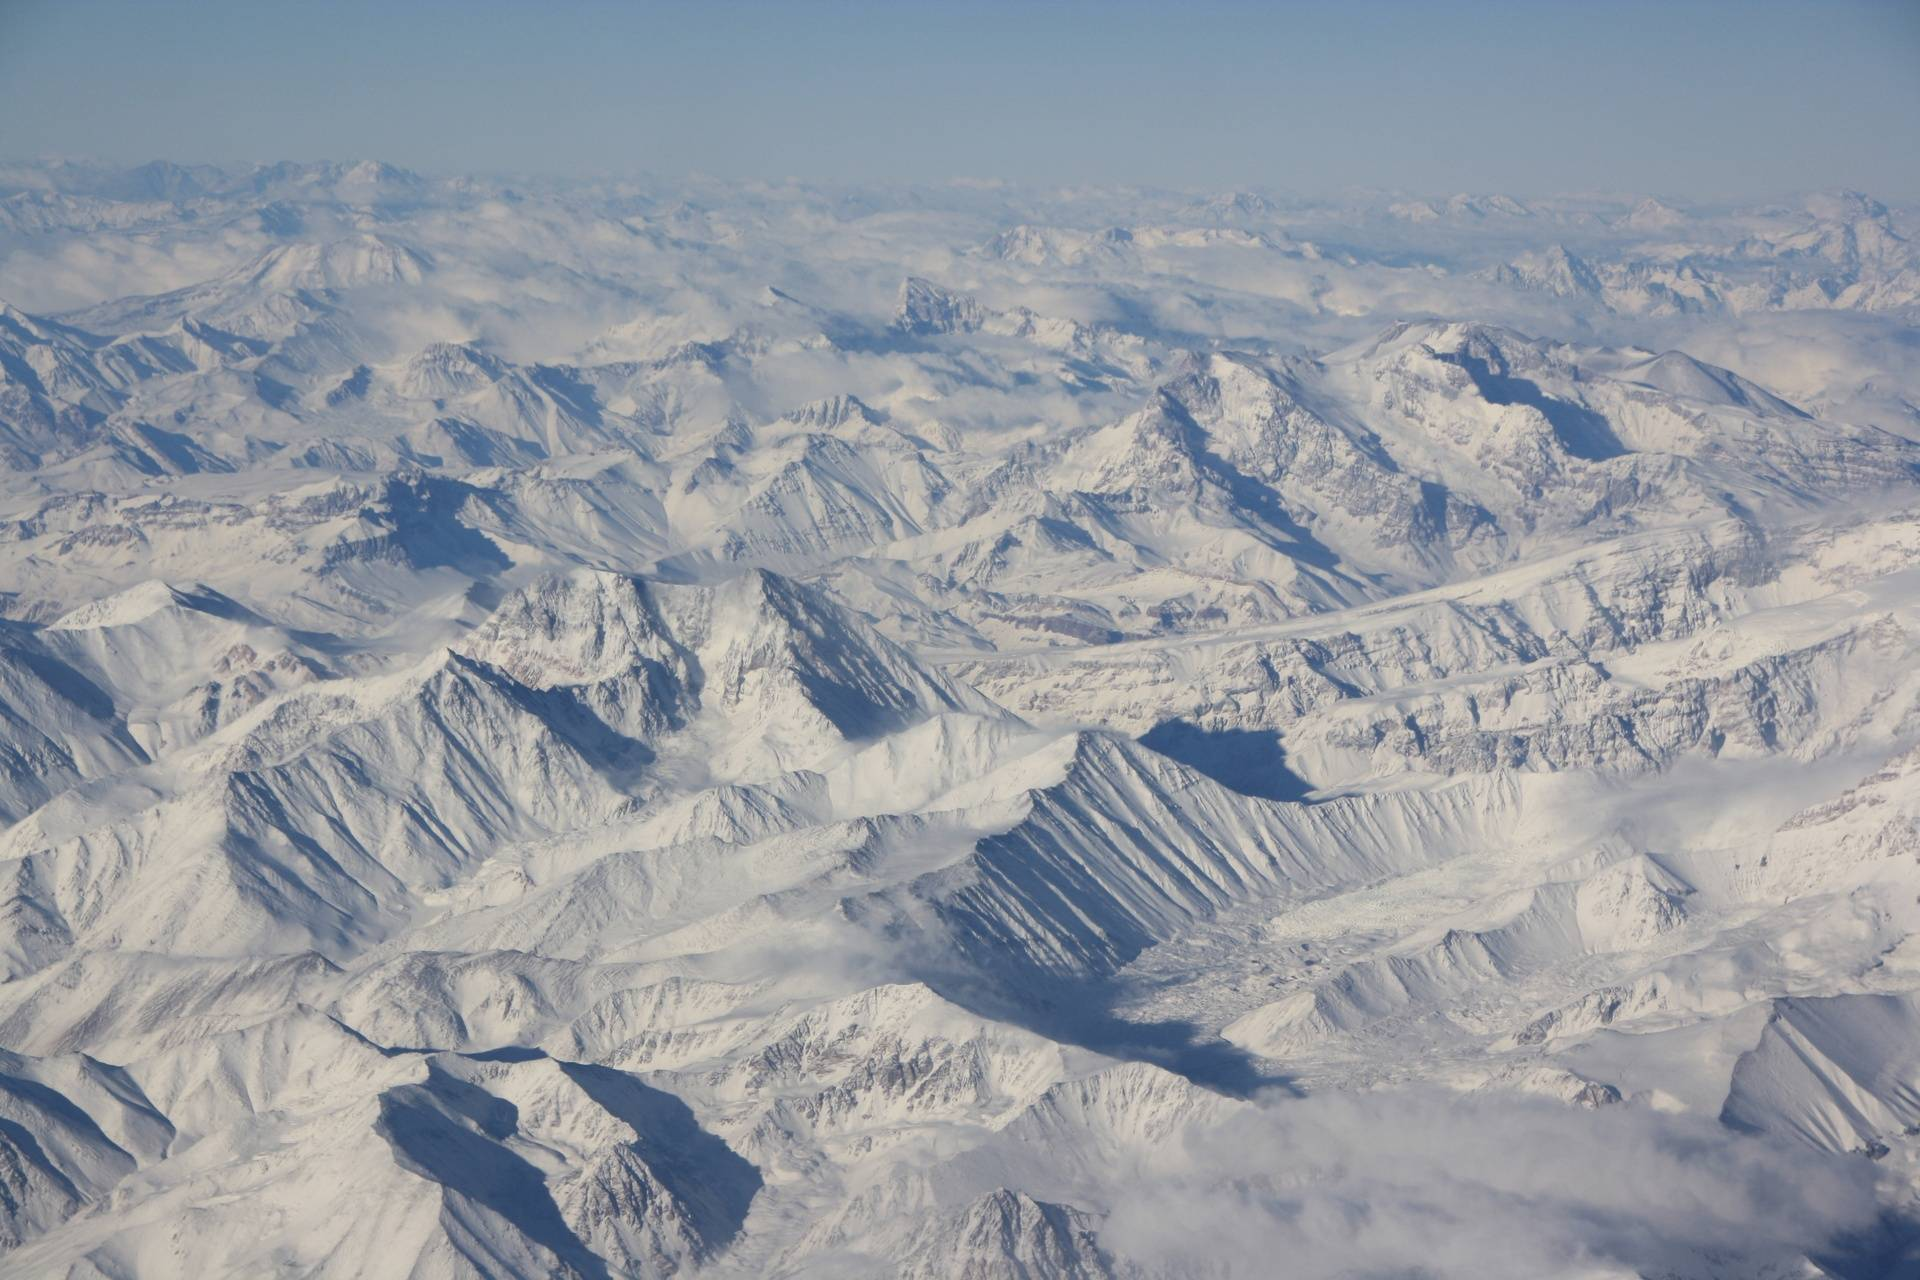 Andes Mountains from plane